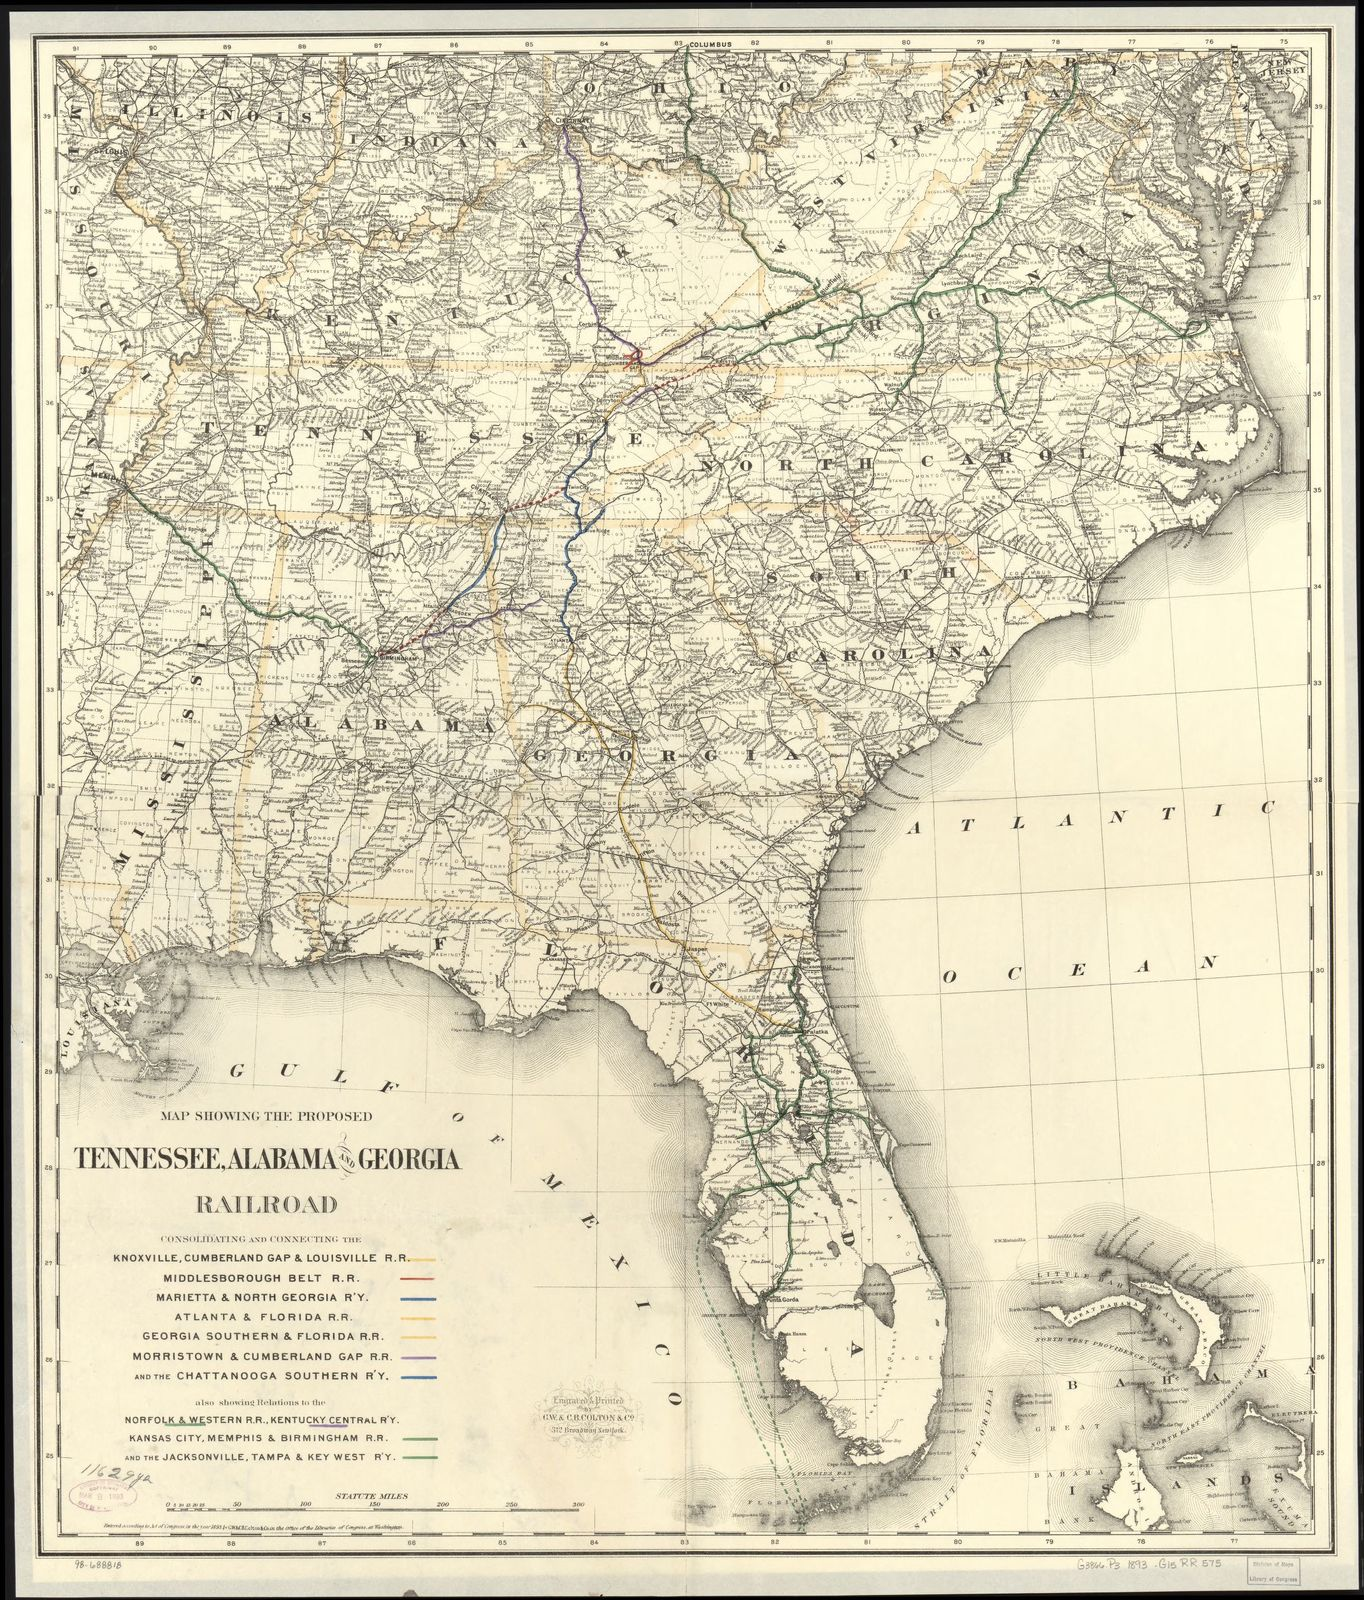 Map Showing The Proposed Tennessee Alabama And Georgia Railroad